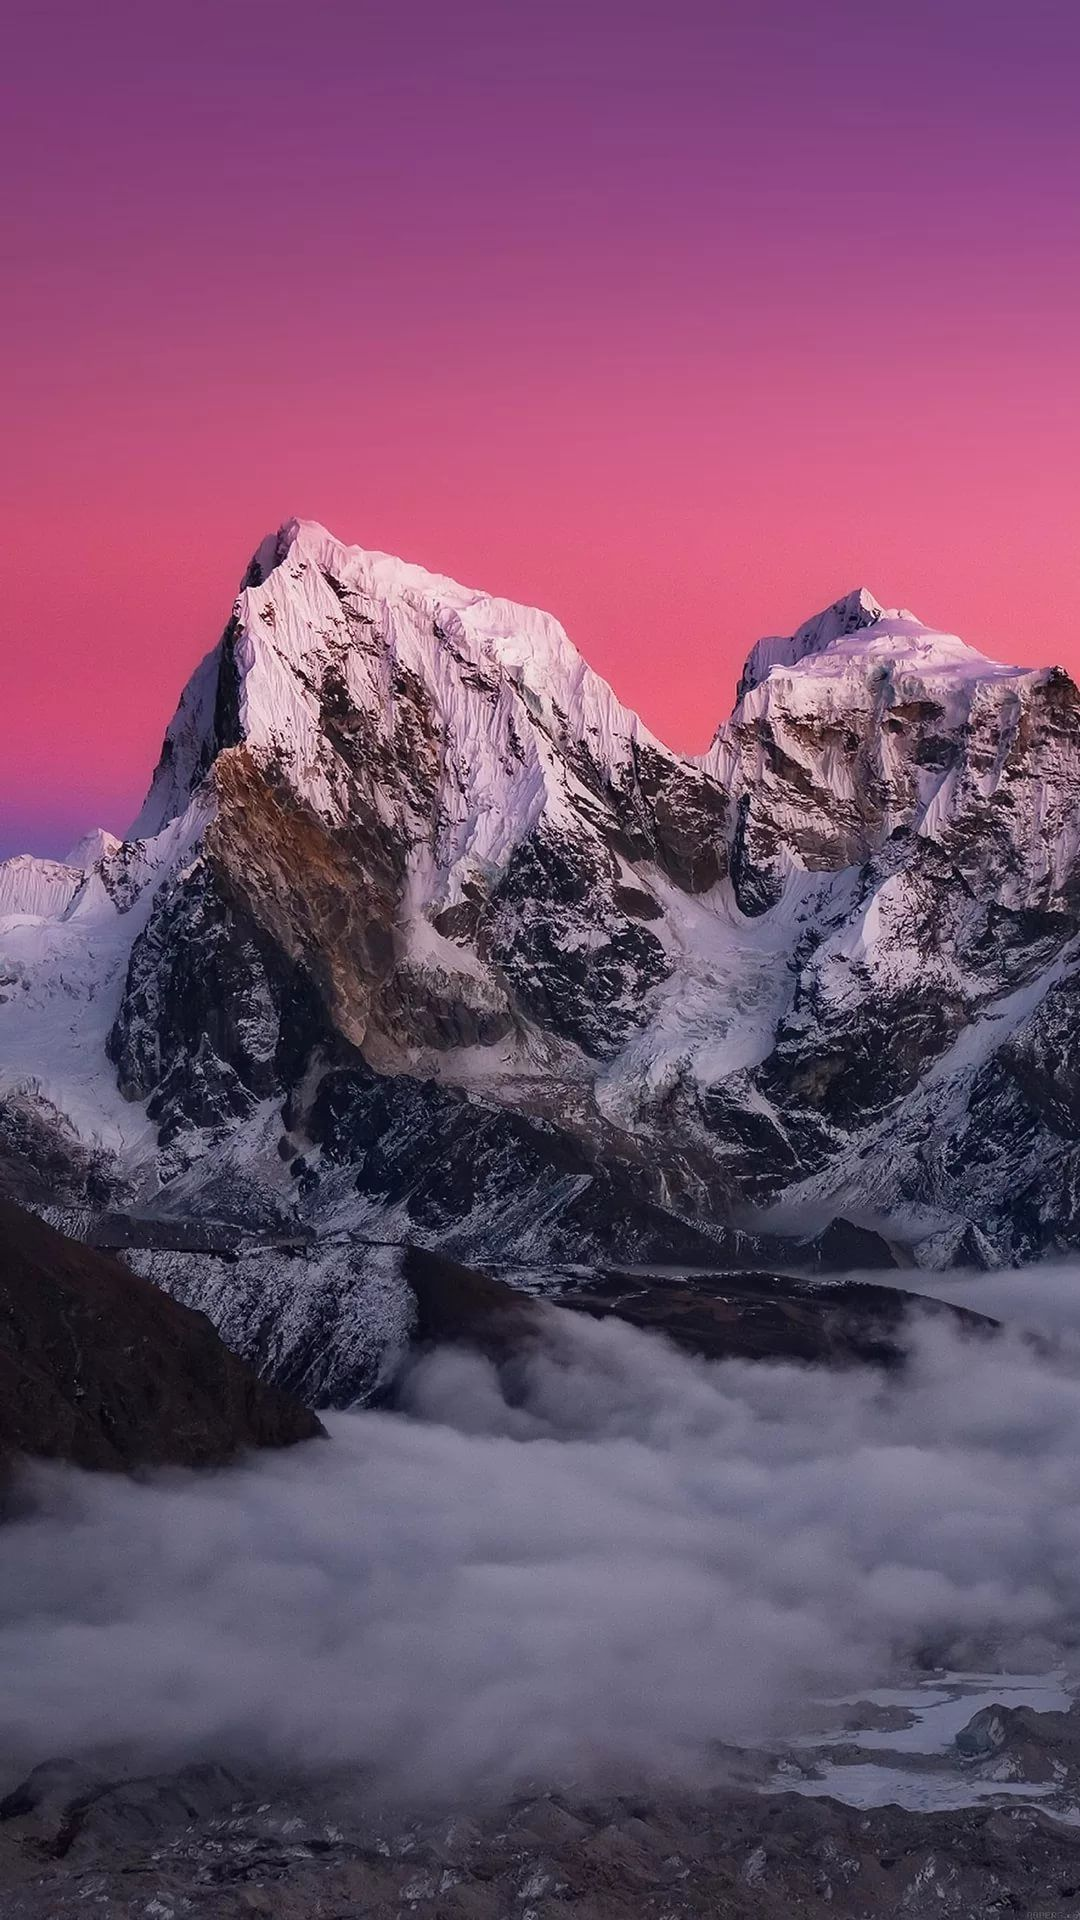 Mountain Wallpaper for iPhone